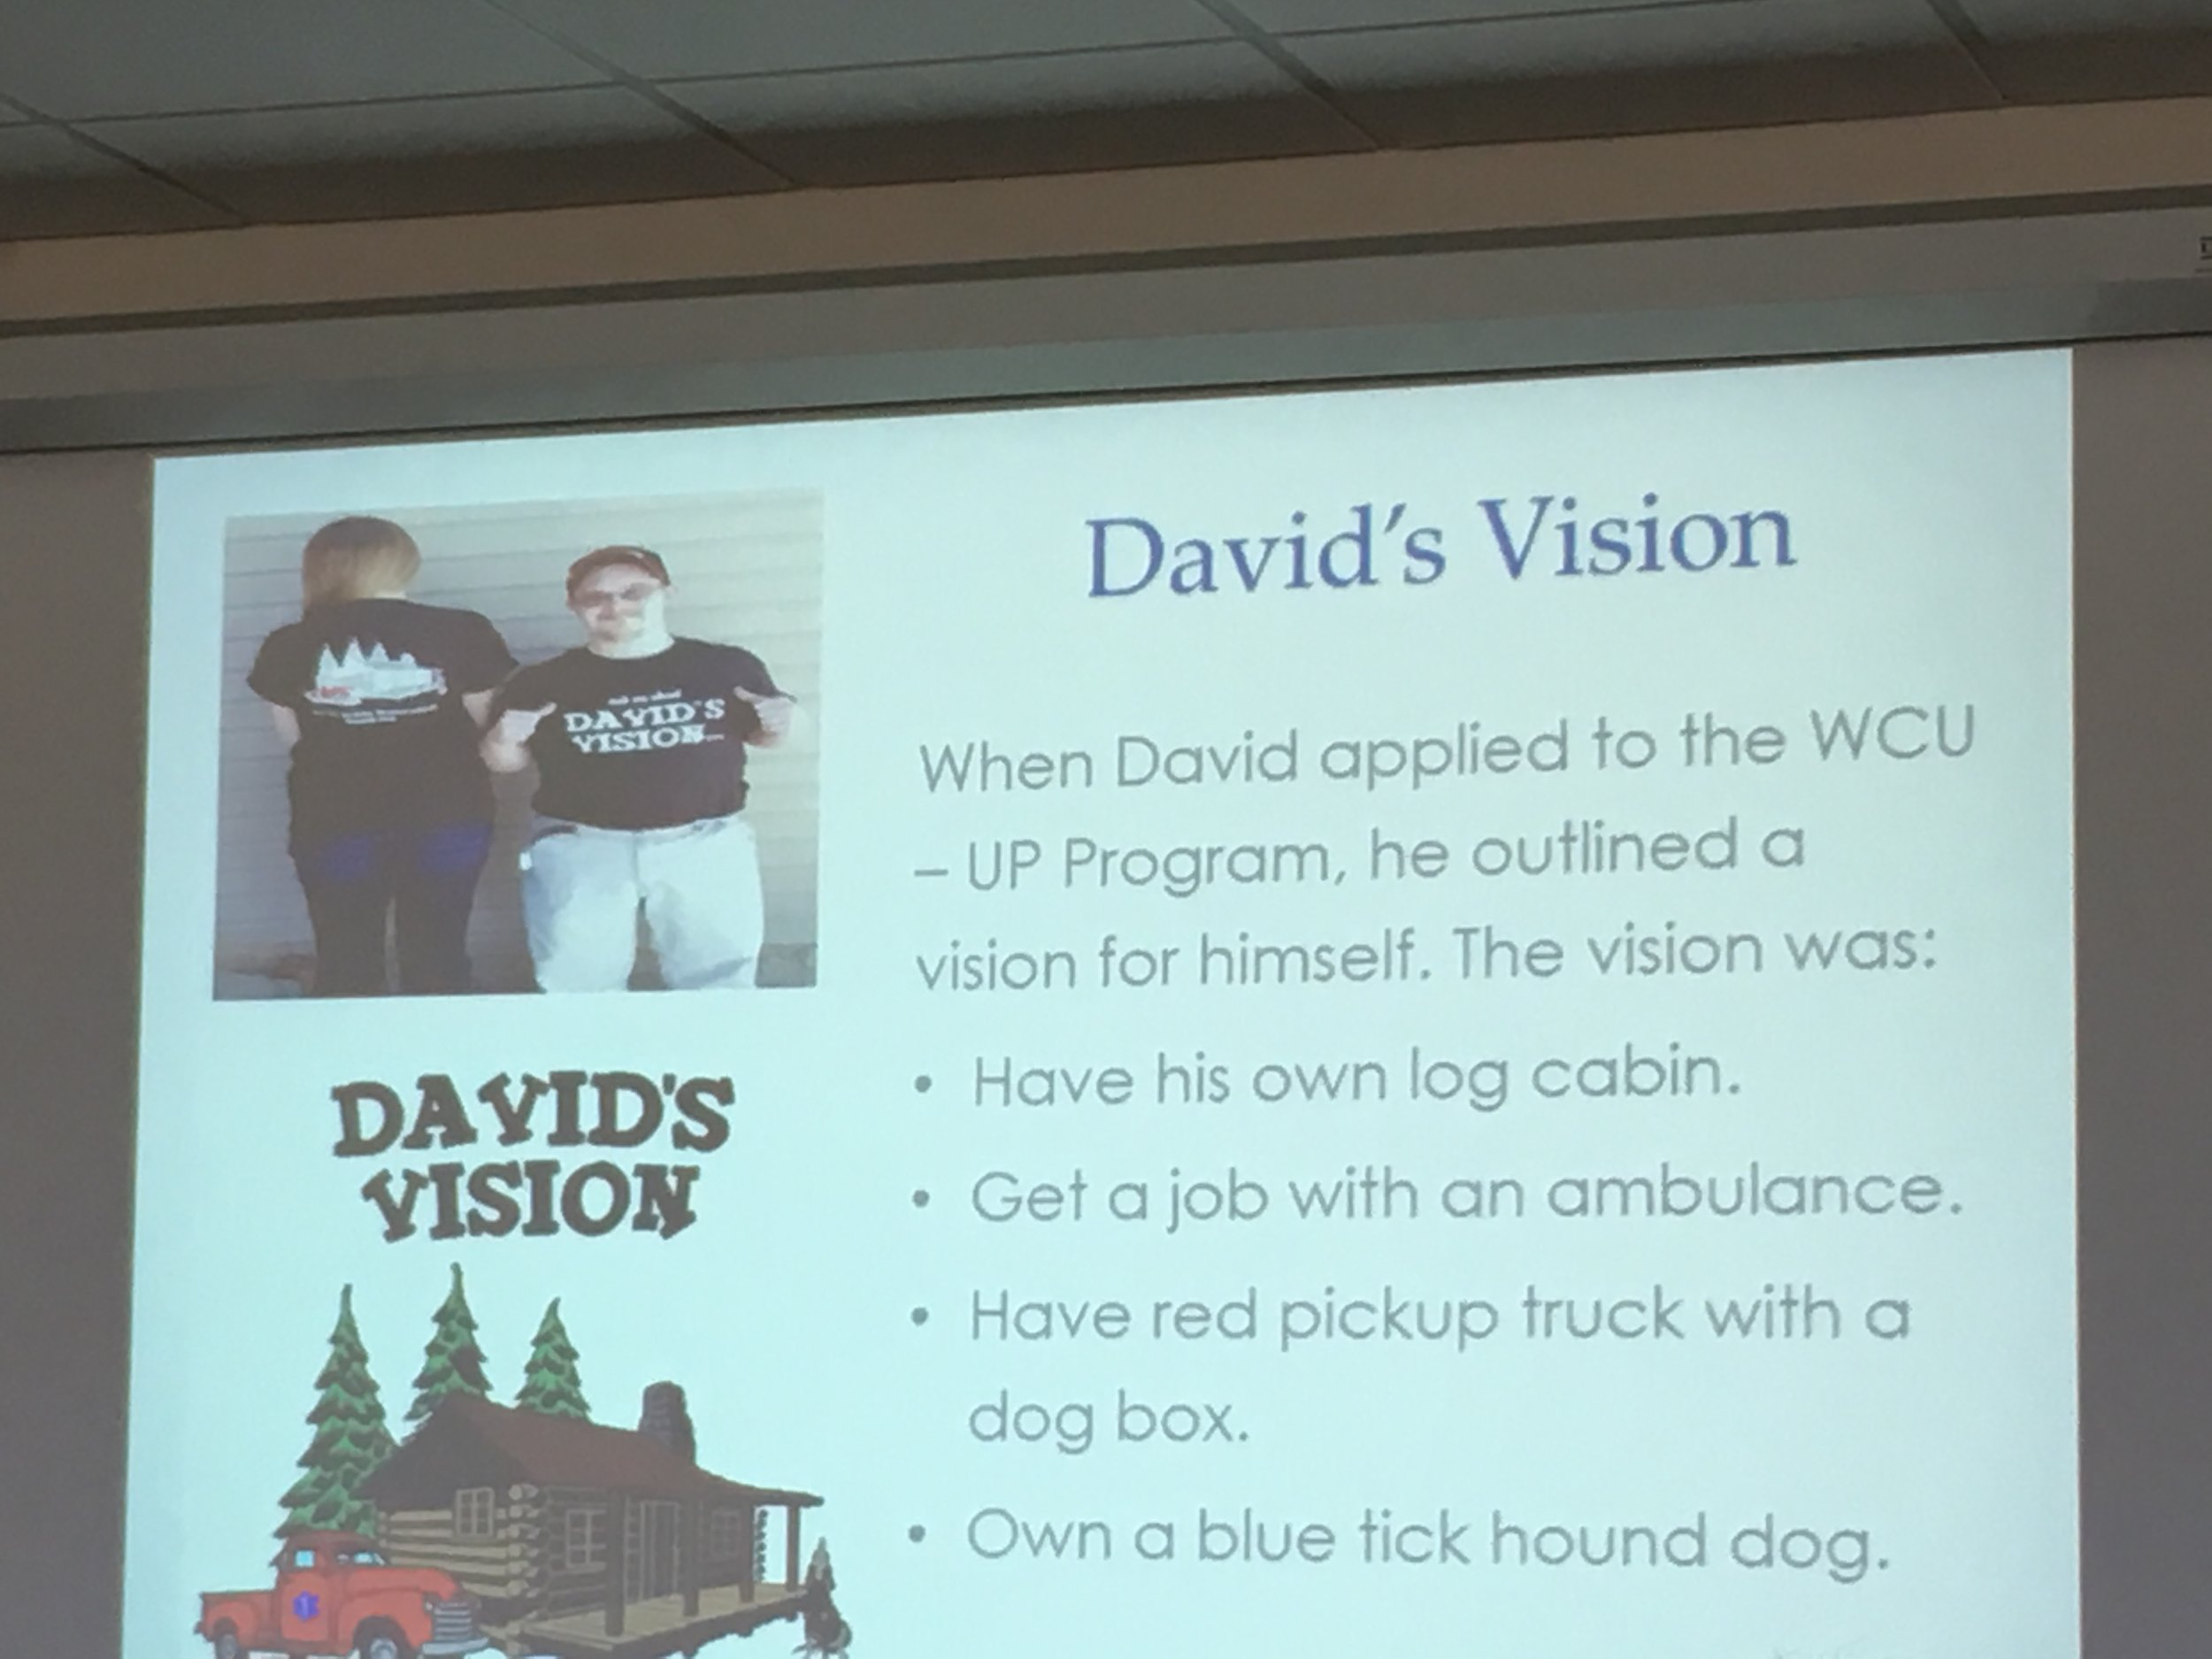 As part of his application to WCU's UP program, David created a vision for his life.